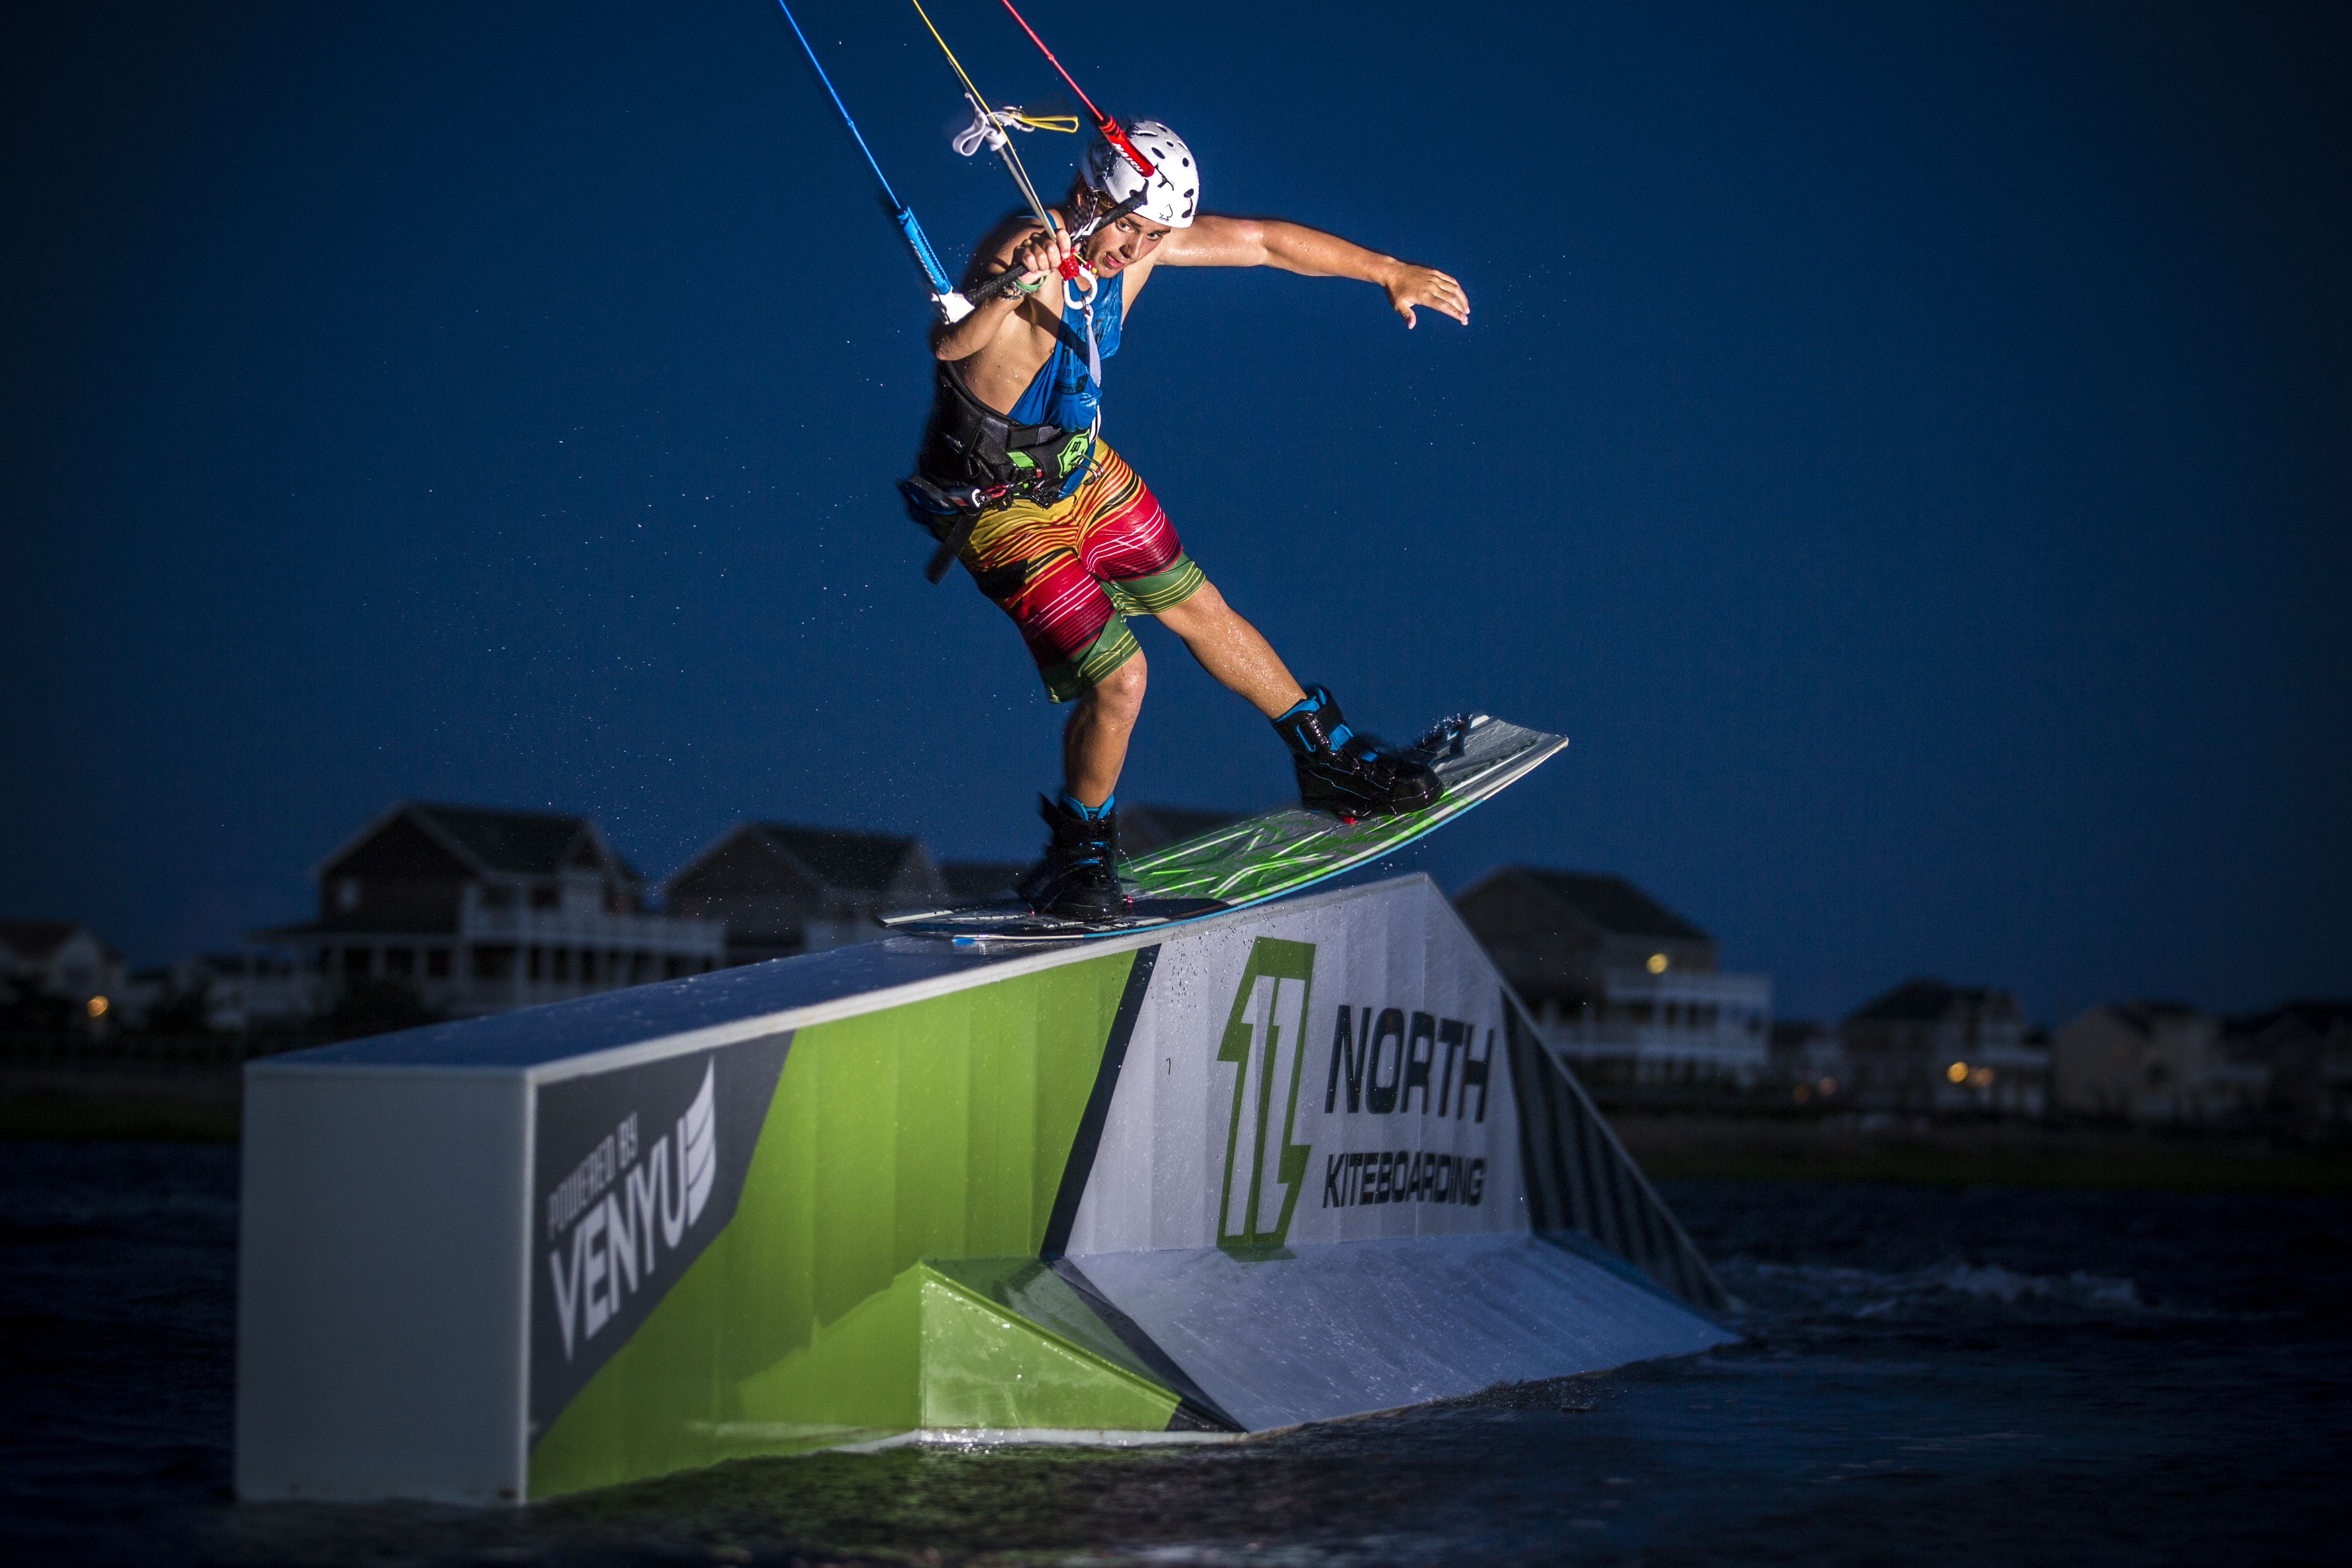 Ewan Jaspan, Real Triple S Invitational, Naish Kiteboarding